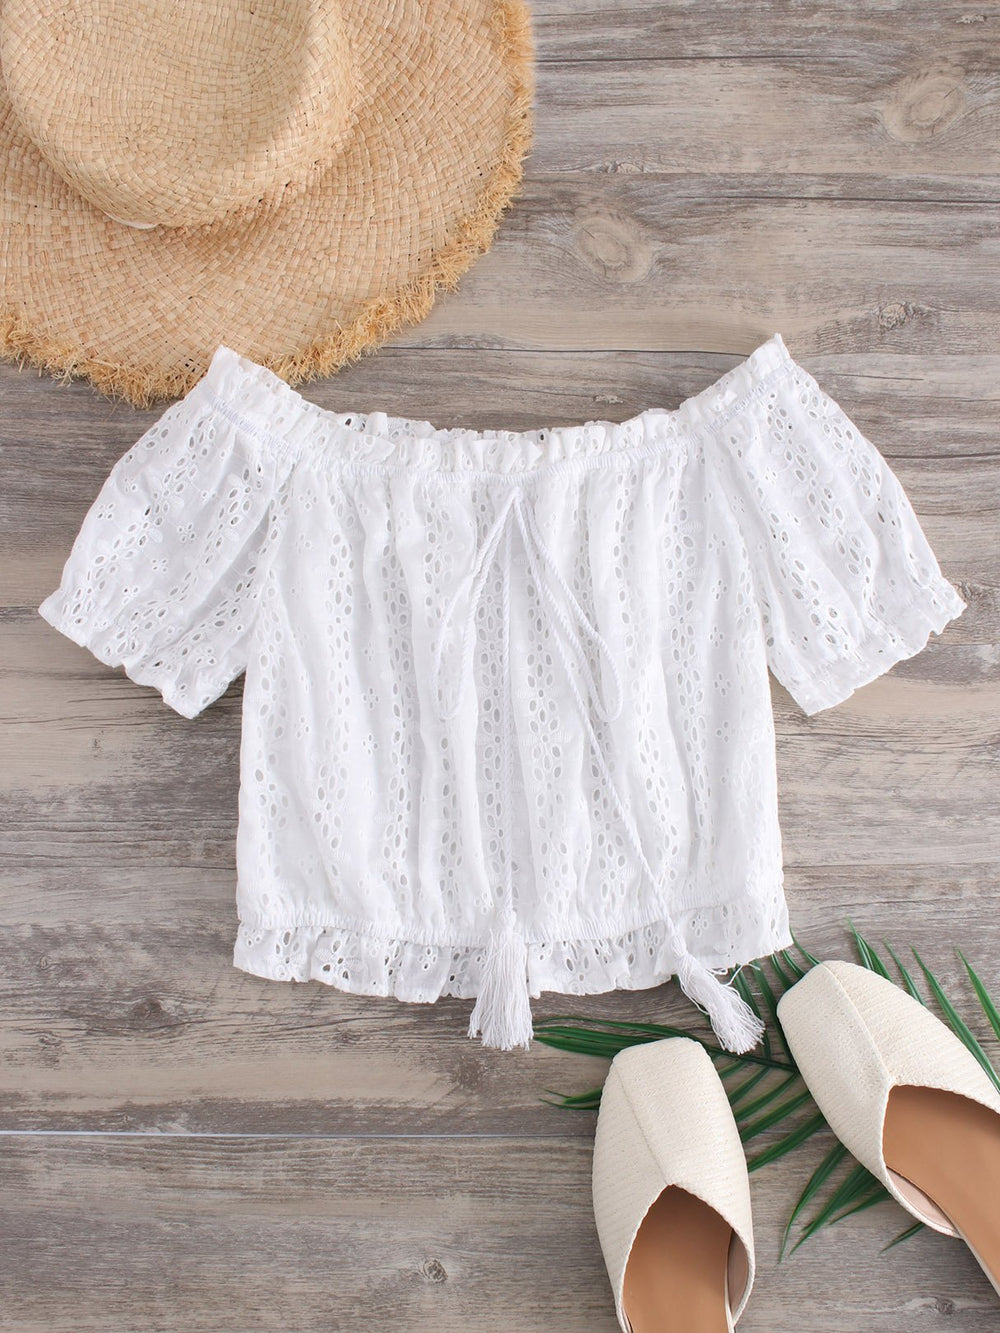 Off The Shoulder Plain Crochet Lace Embellished Hollow Short Sleeve White Crop Top